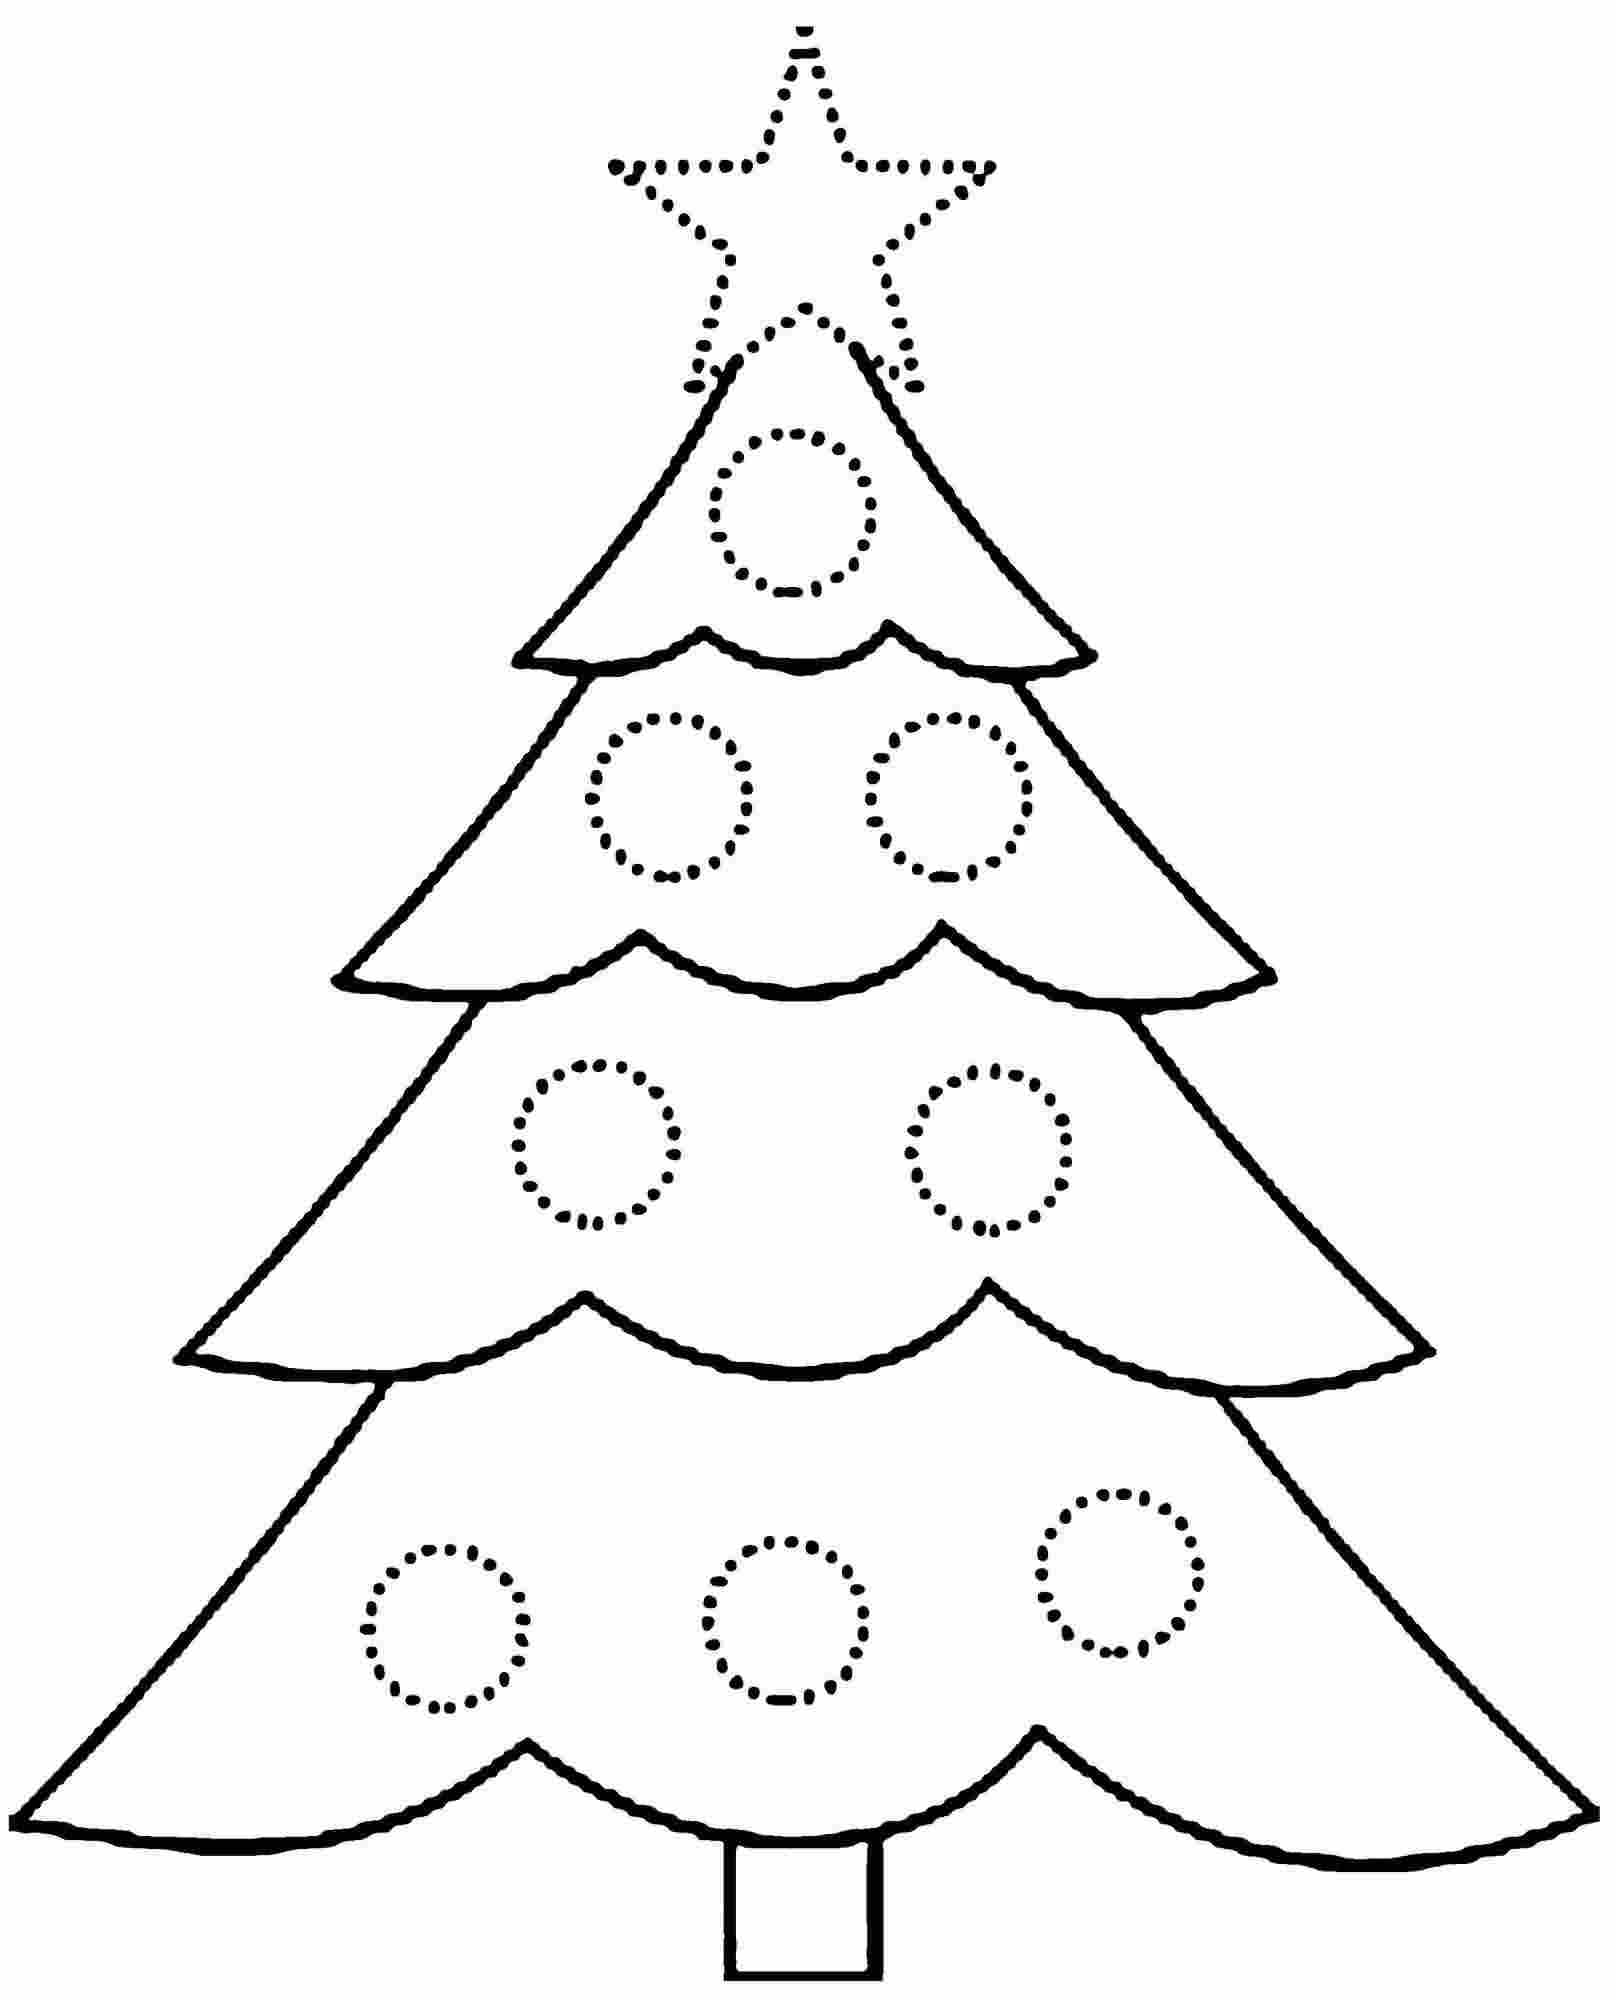 Christmas Tree Coloring Pages Image Picture Photo Wallpaper 19